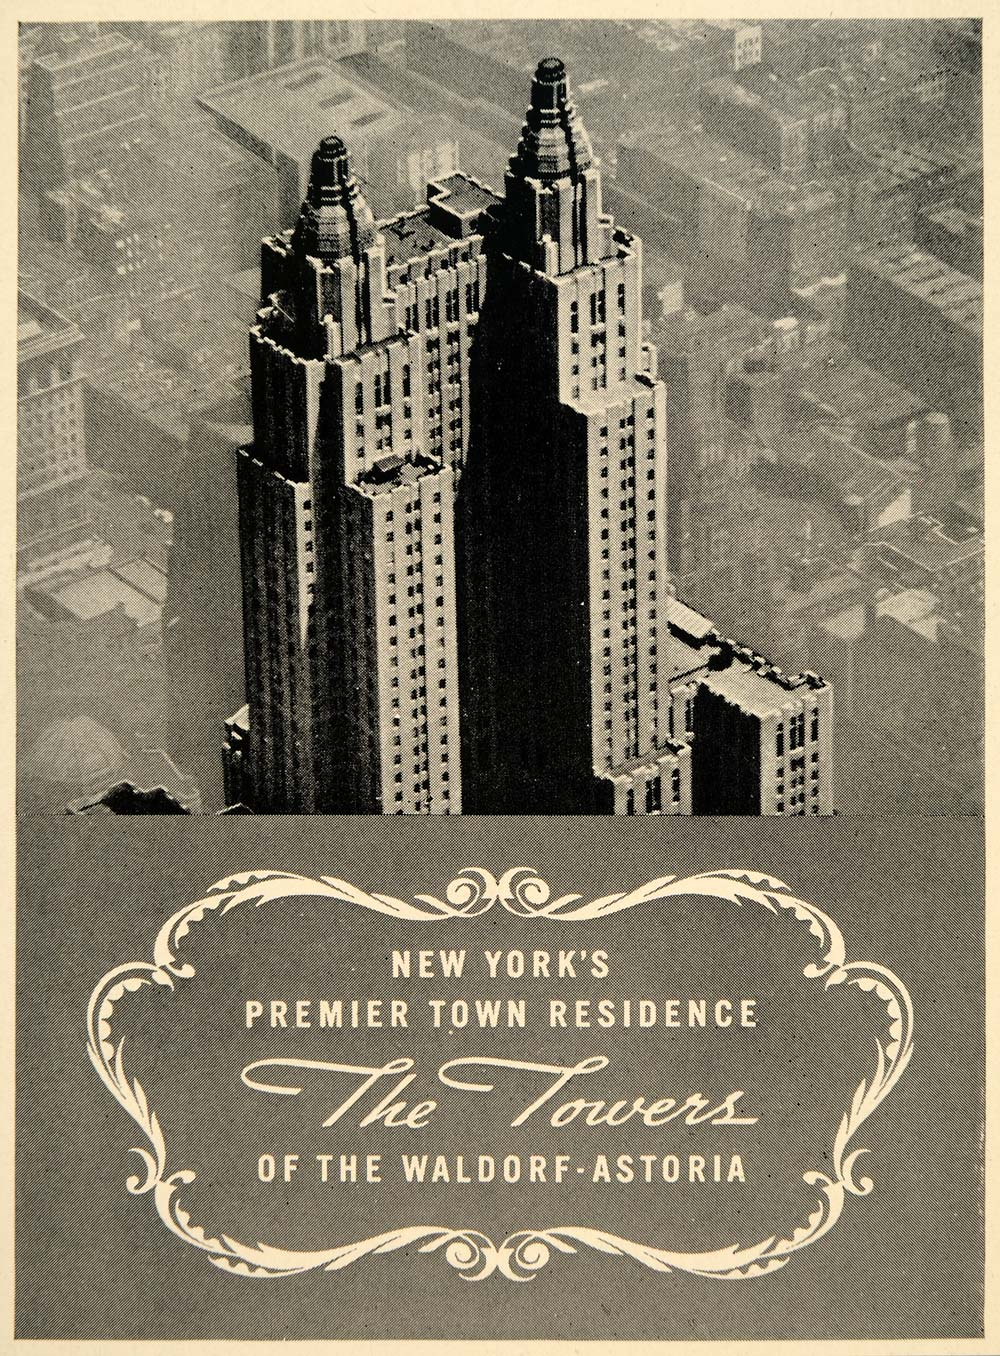 1939 Ad Waldrof-Astoria Towers Hotel Residence New York Cityscape FTT9